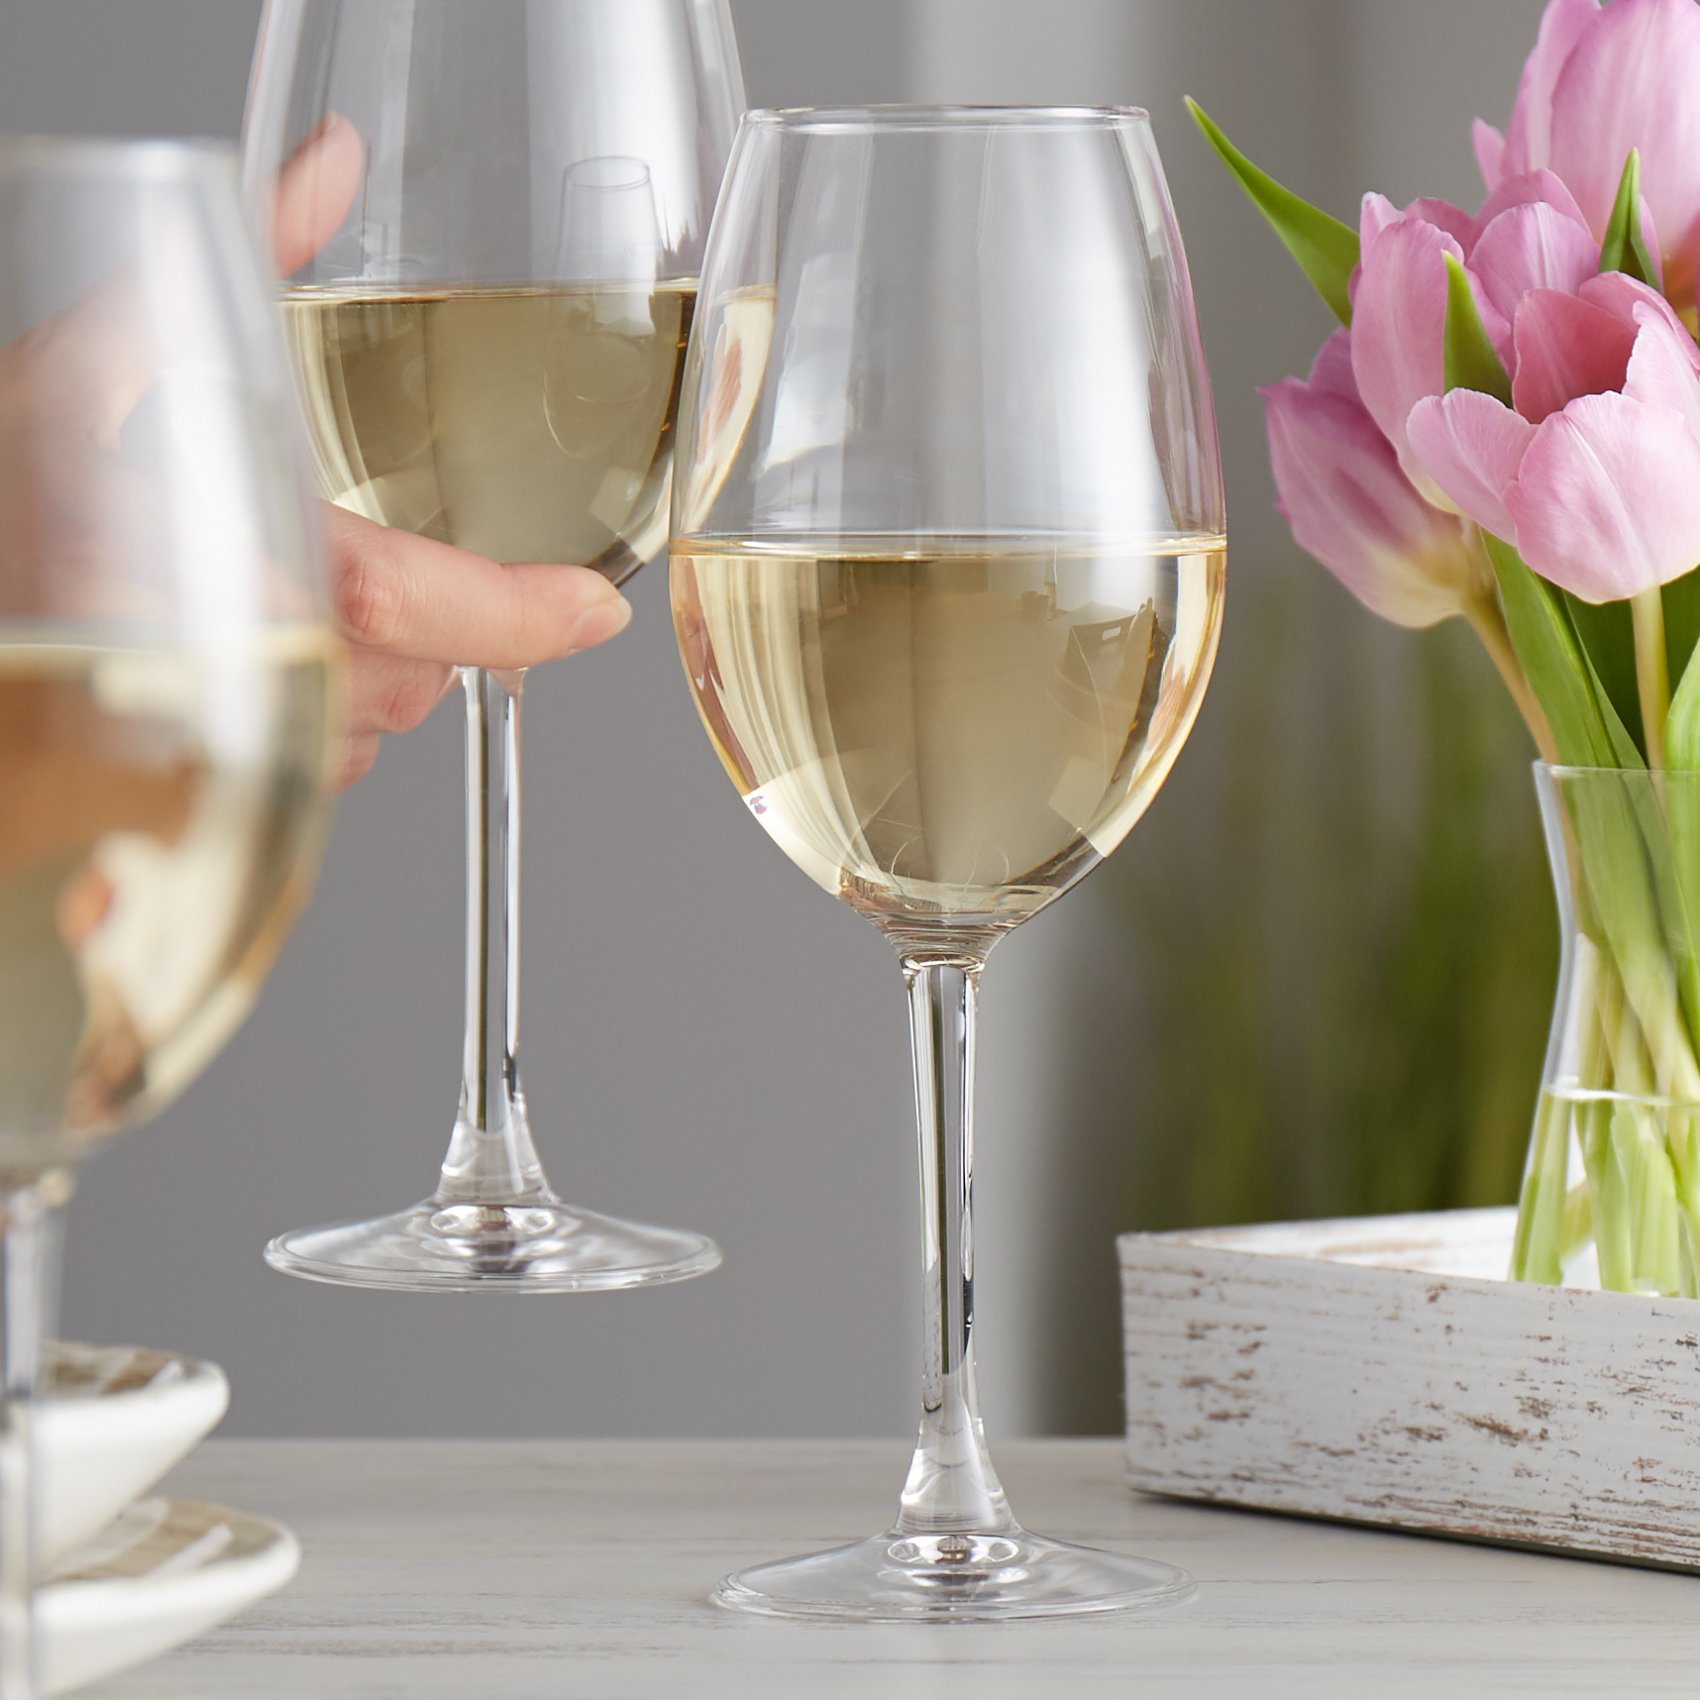 White wine glass filled with sauvignon blanc on an elegant table with tulips in the background